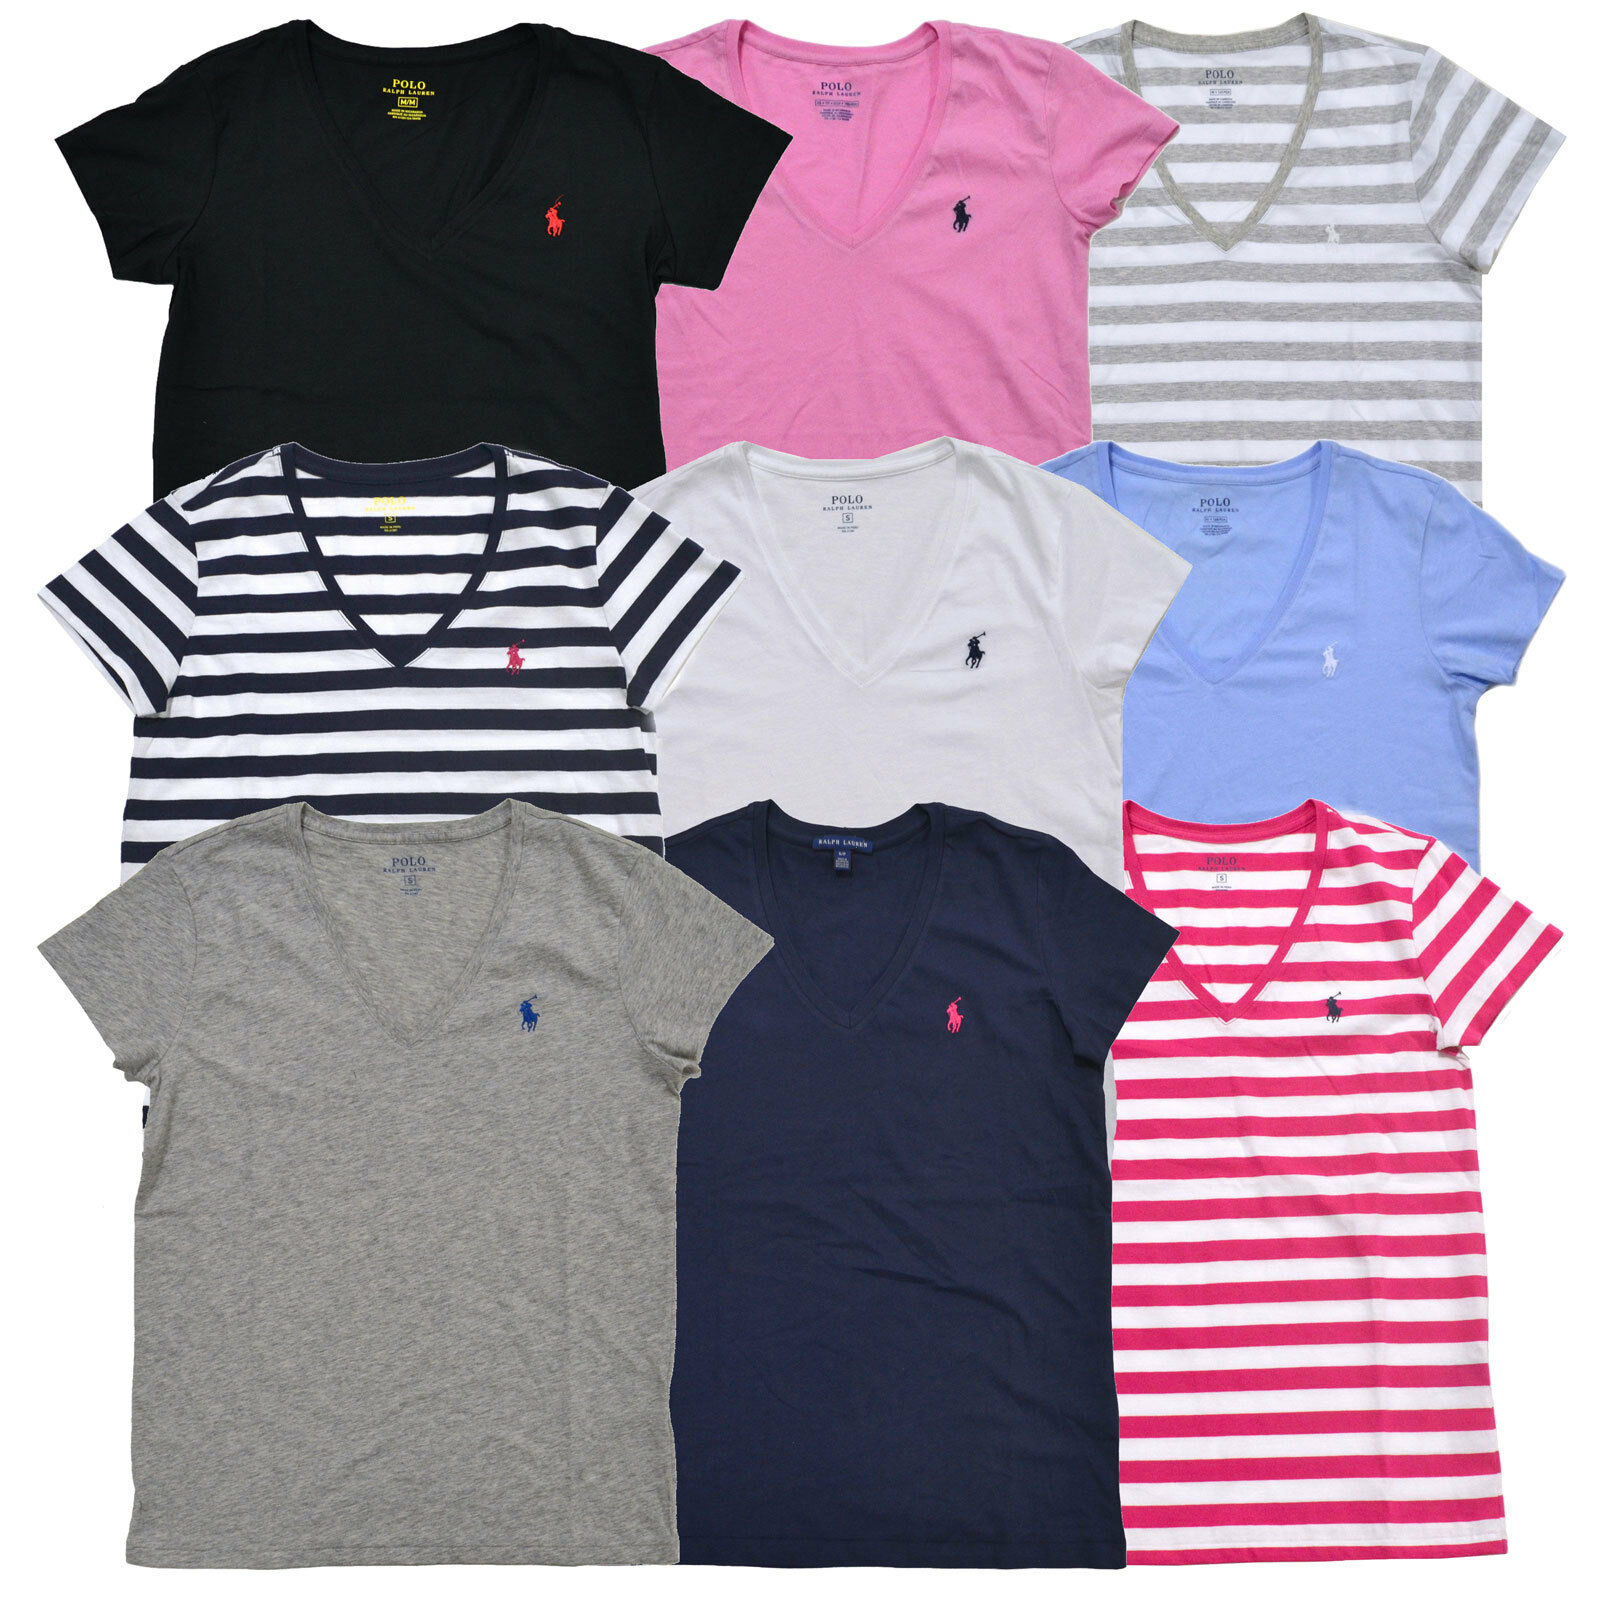 Womens Ralph Lauren Polo V Neck Tees Rockwall Auction